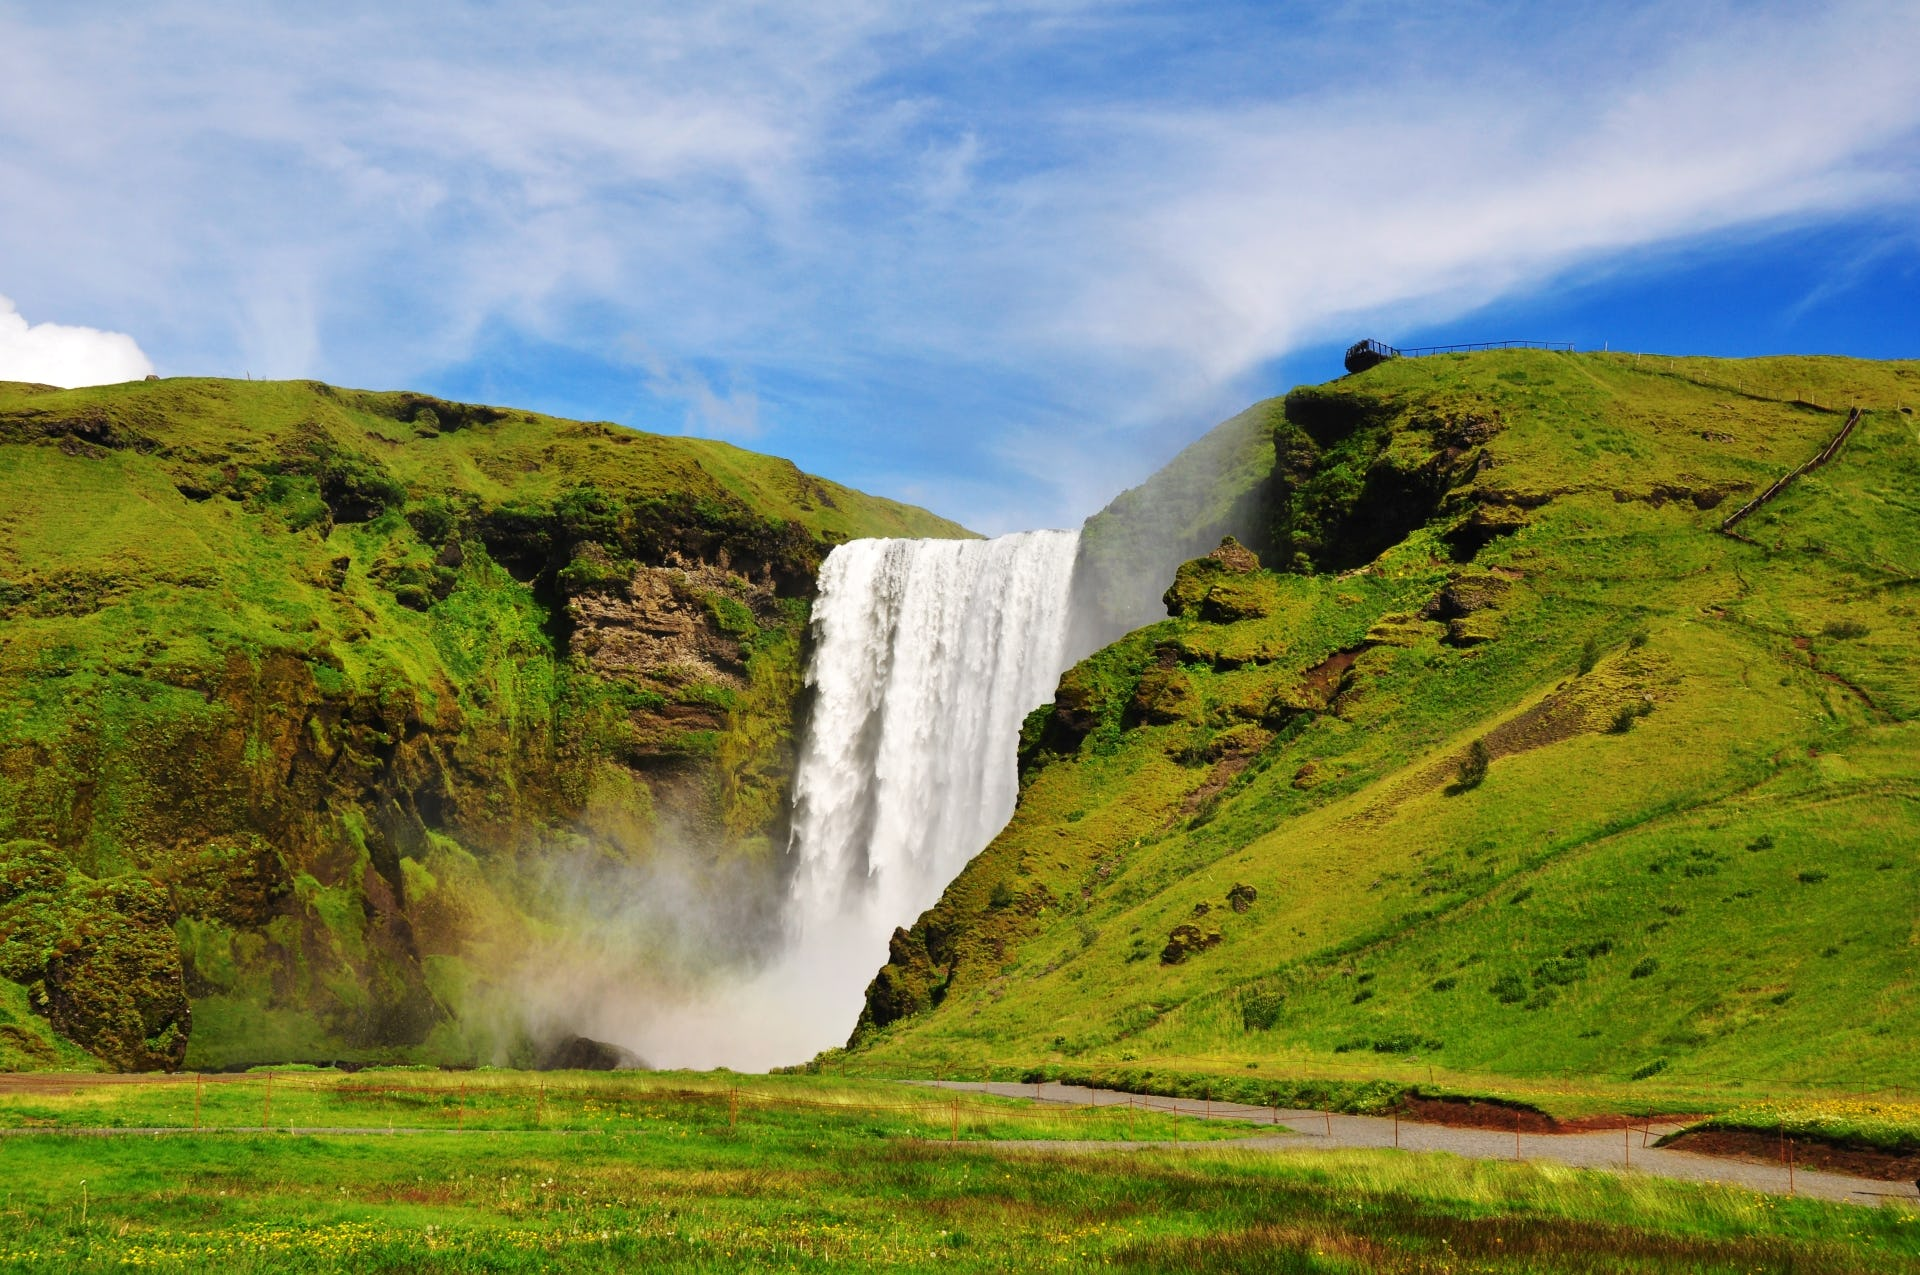 Skógafoss waterfall on Iceland's South Coast in a popular destination for visitors to Iceland.